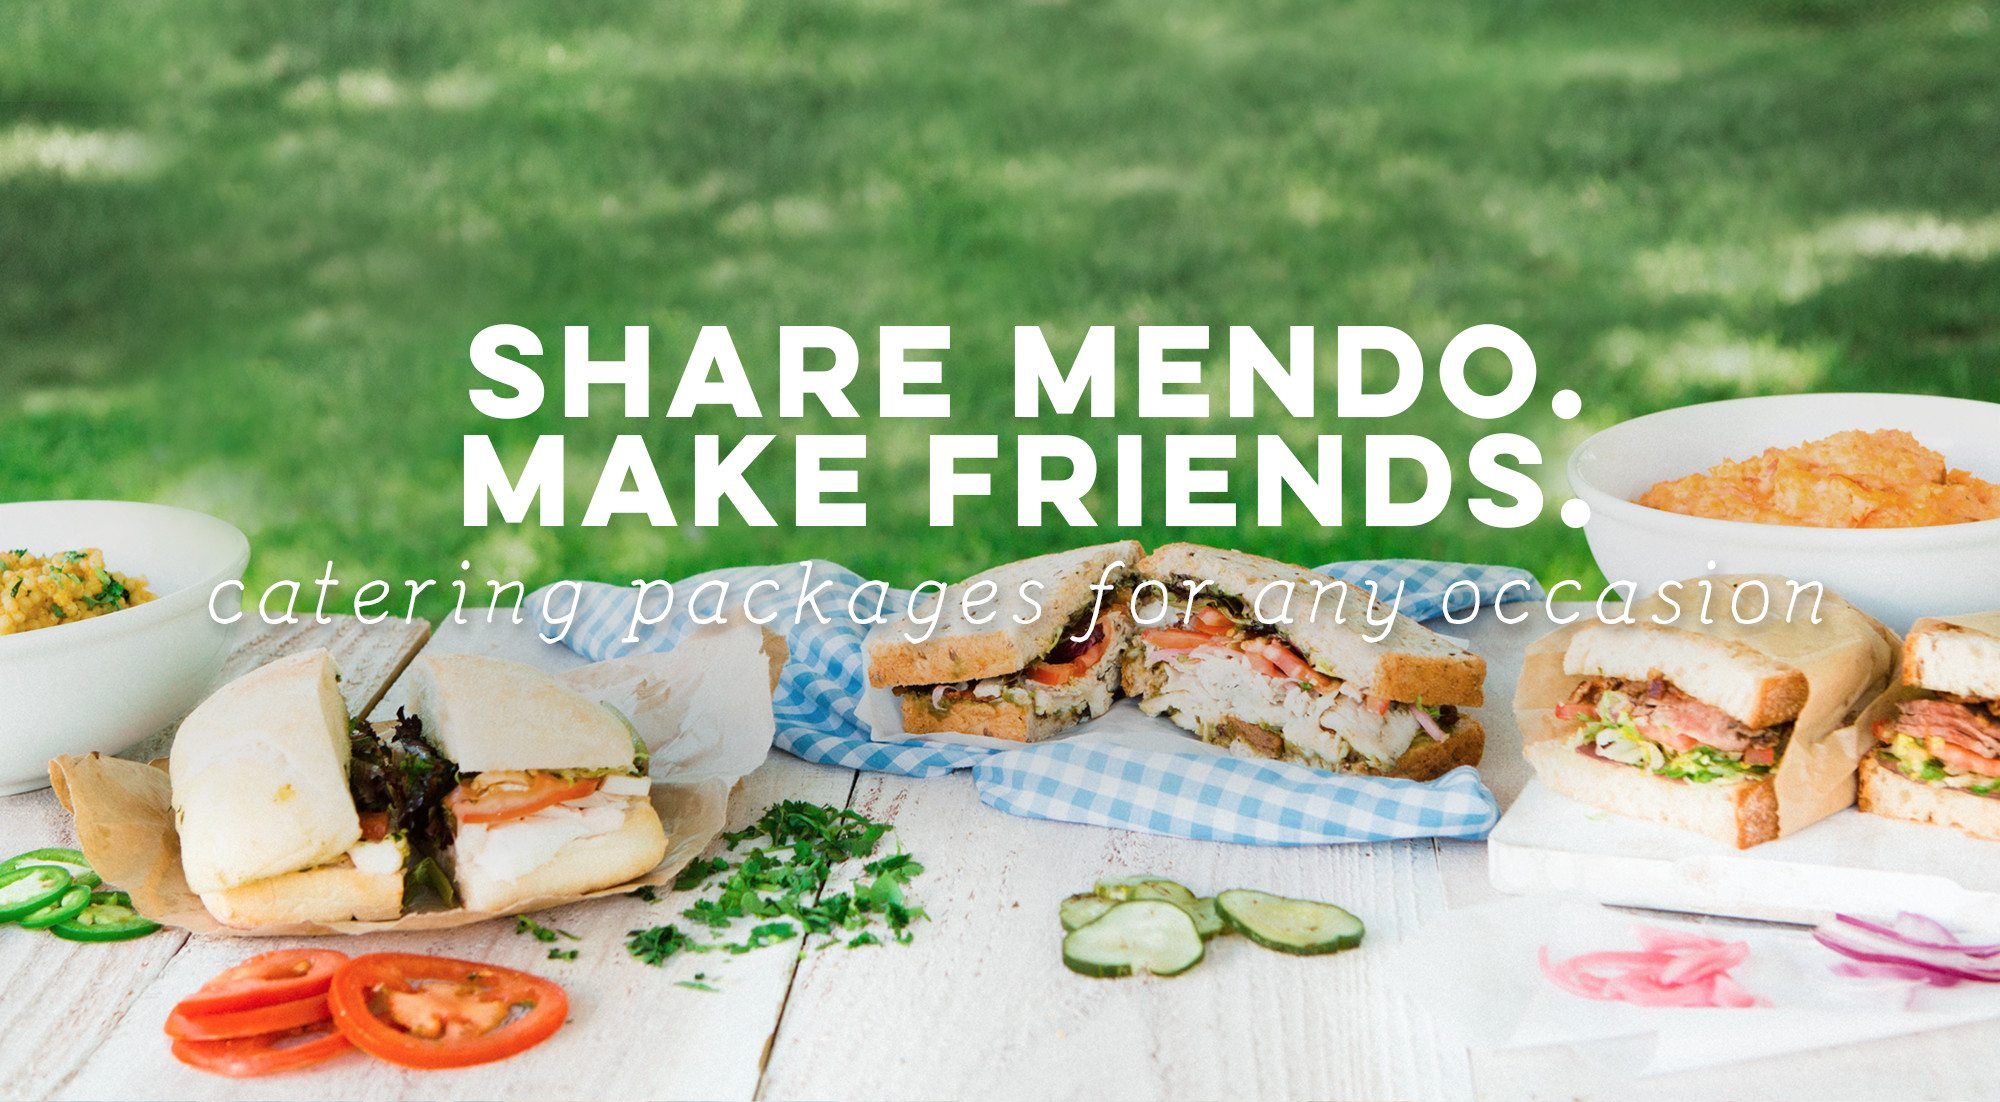 Mendocino Farms Catering - Delivery